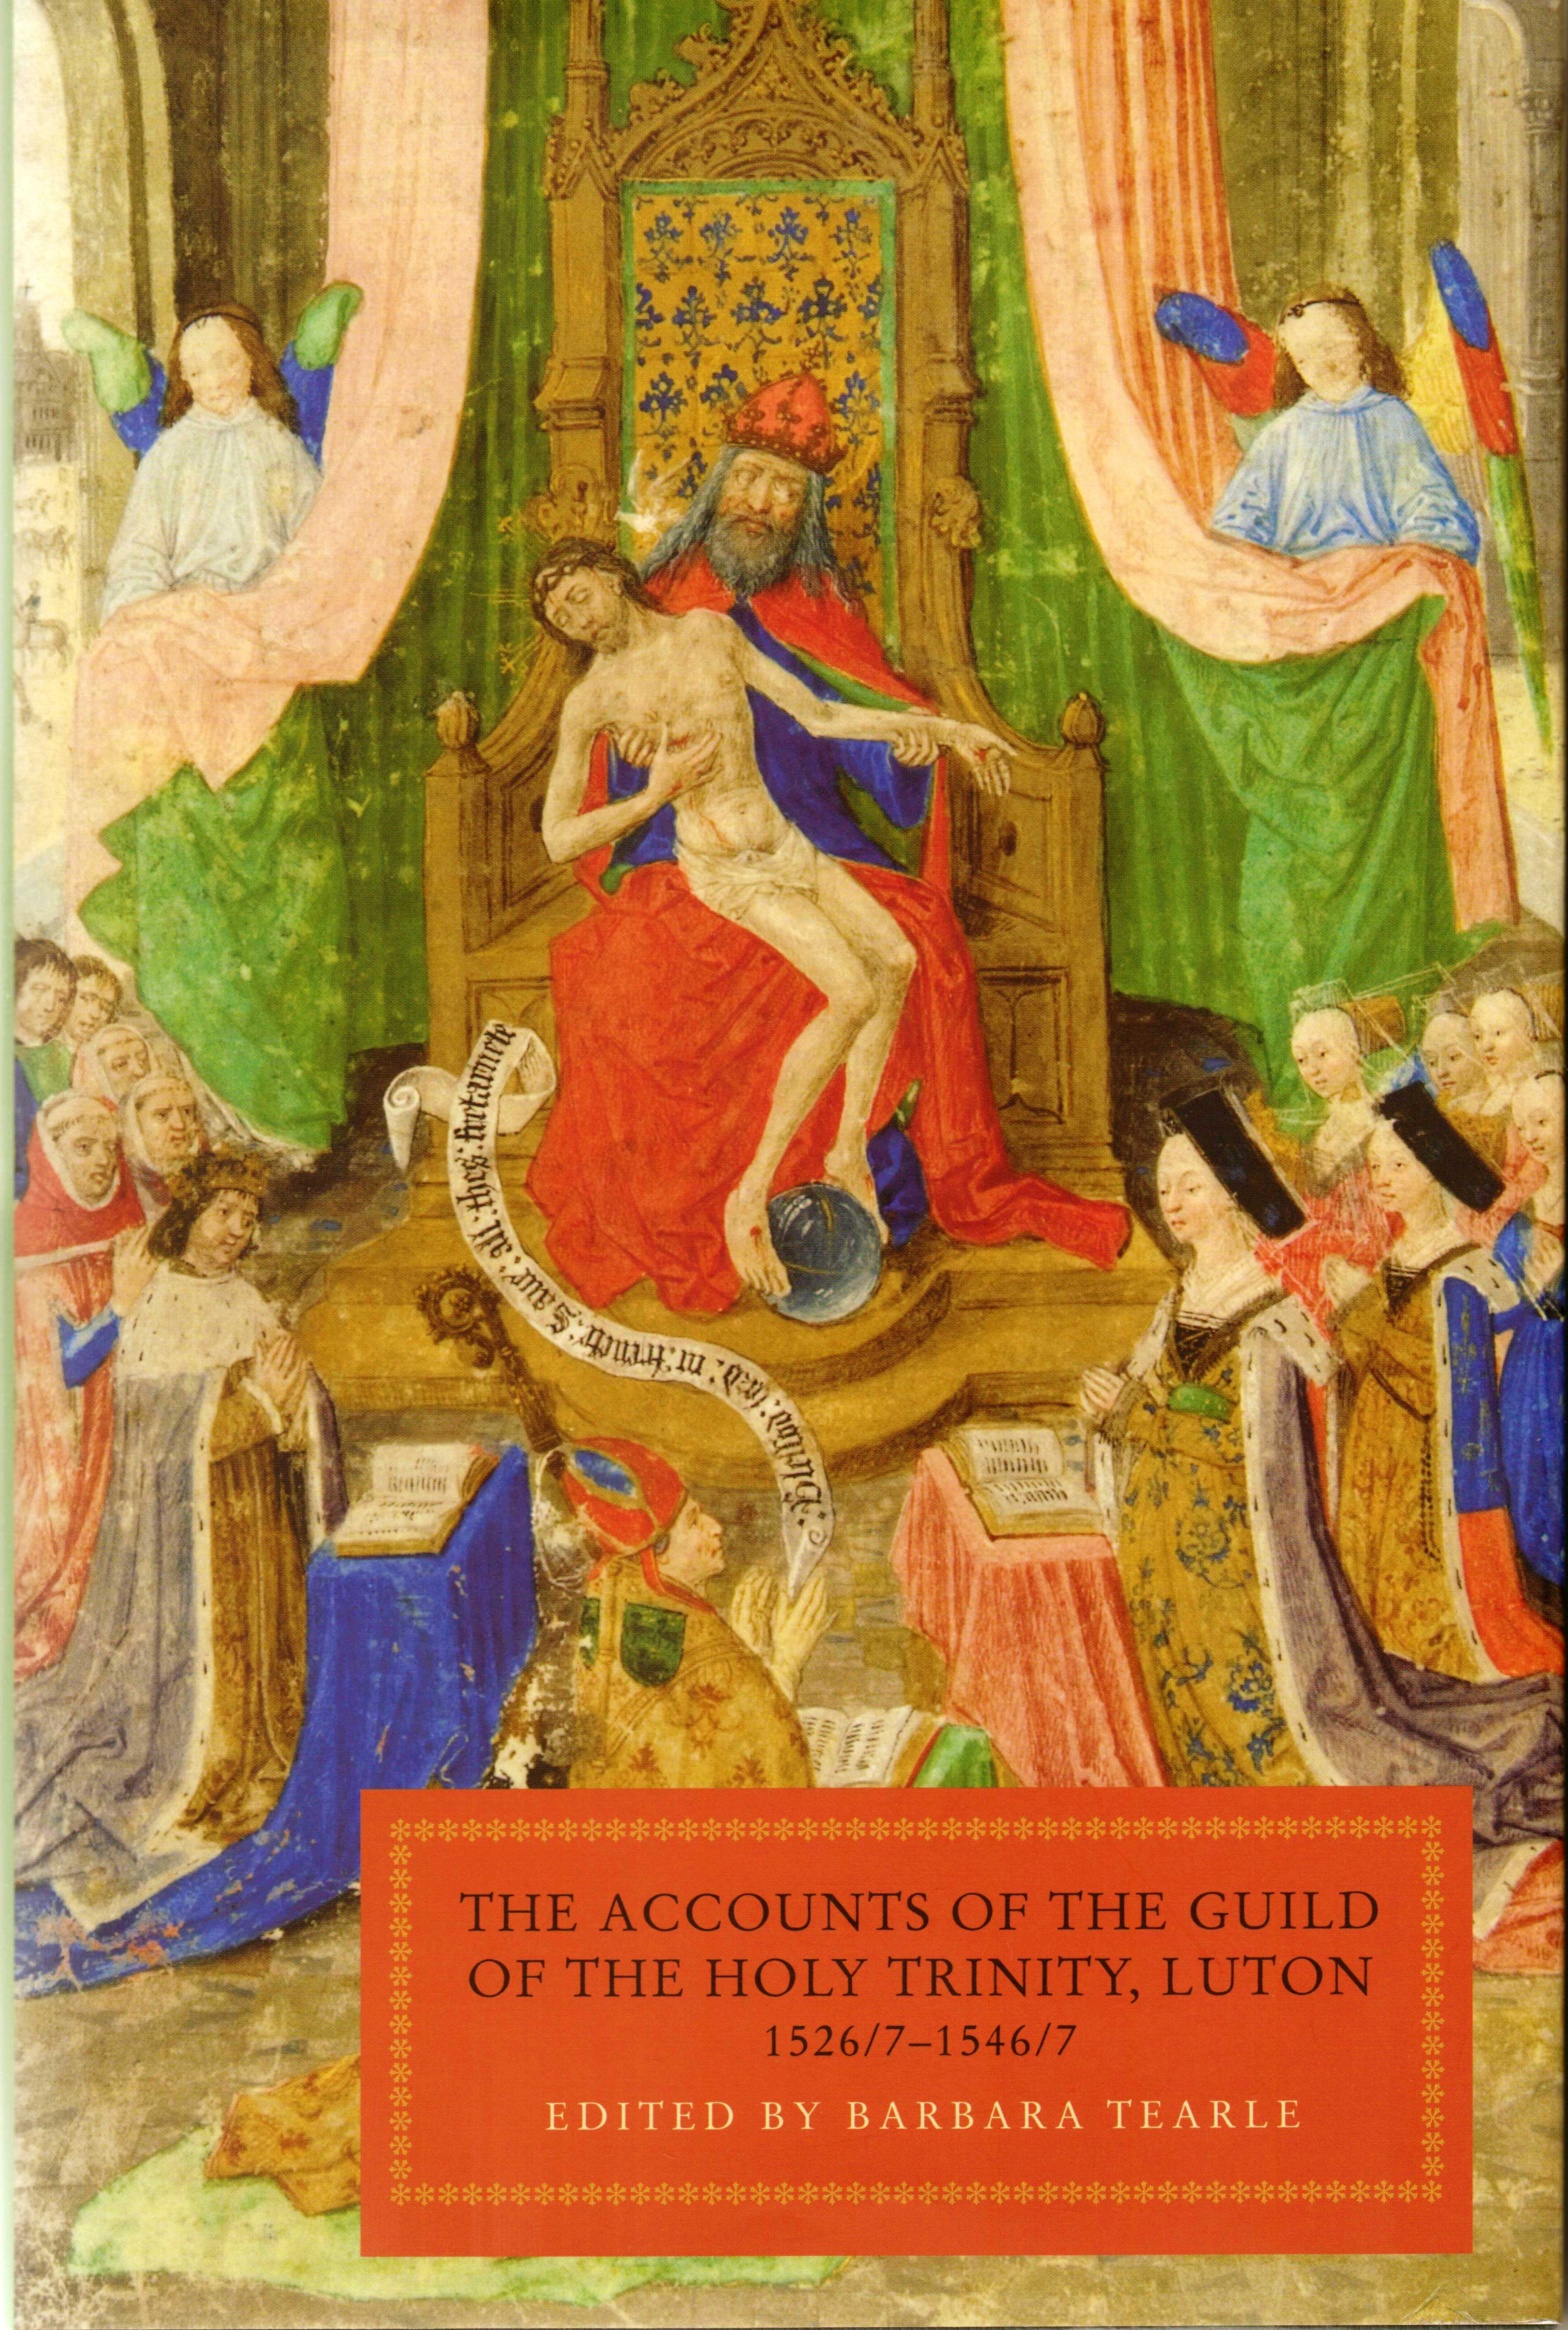 The Accounts of the Guild of the Holy Trinity, Luton 1526/7-1546/7